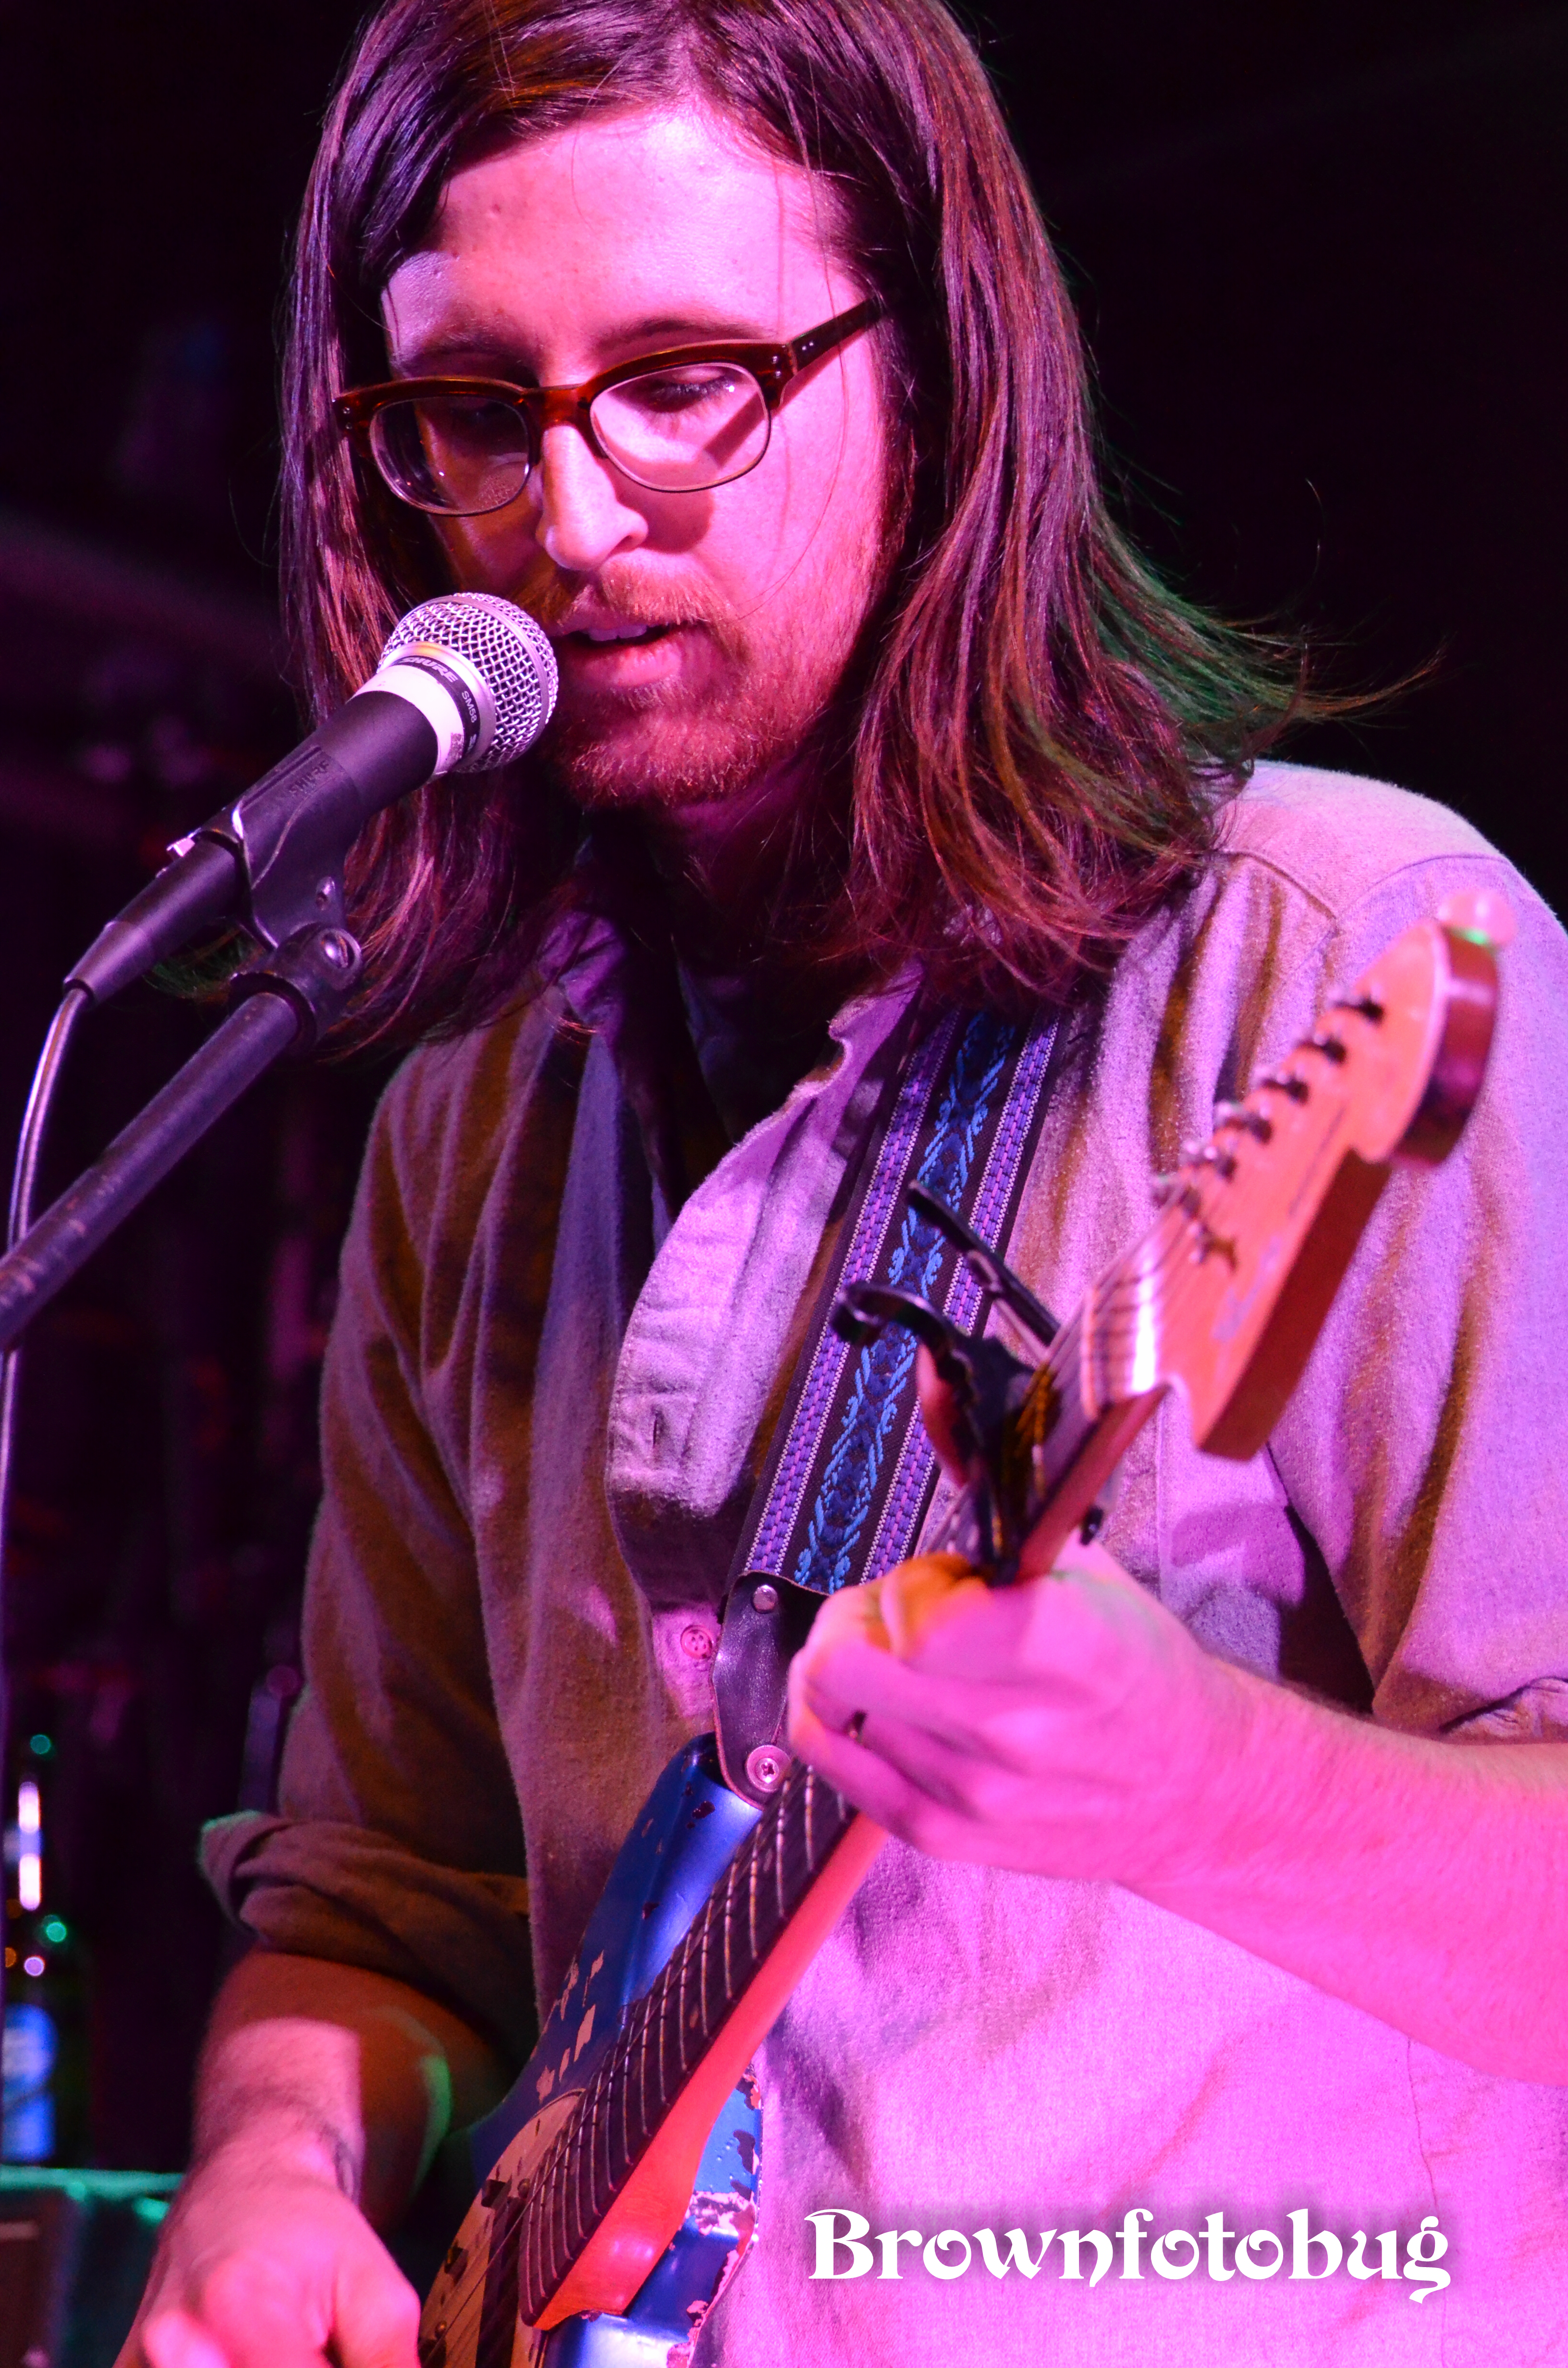 Cabana at the Tractor Tavern (Photo by Arlene Brown)